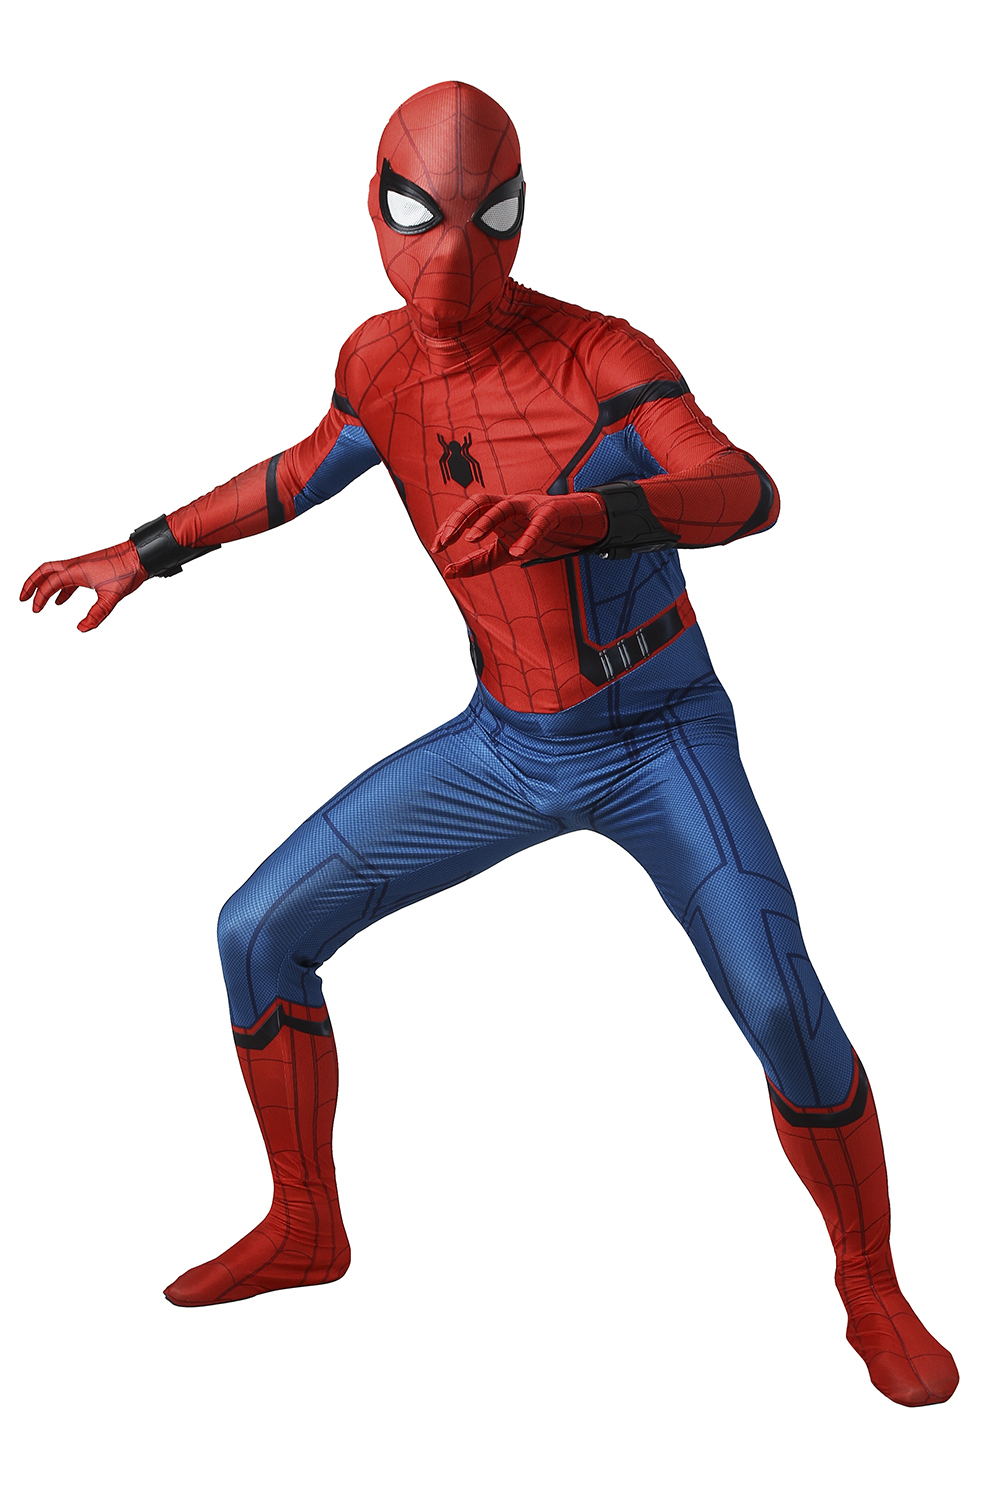 2017 Spider-Man Homecoming Peter Parker Superhero Complete Cosplay Costume  - $85.13 - $100.69